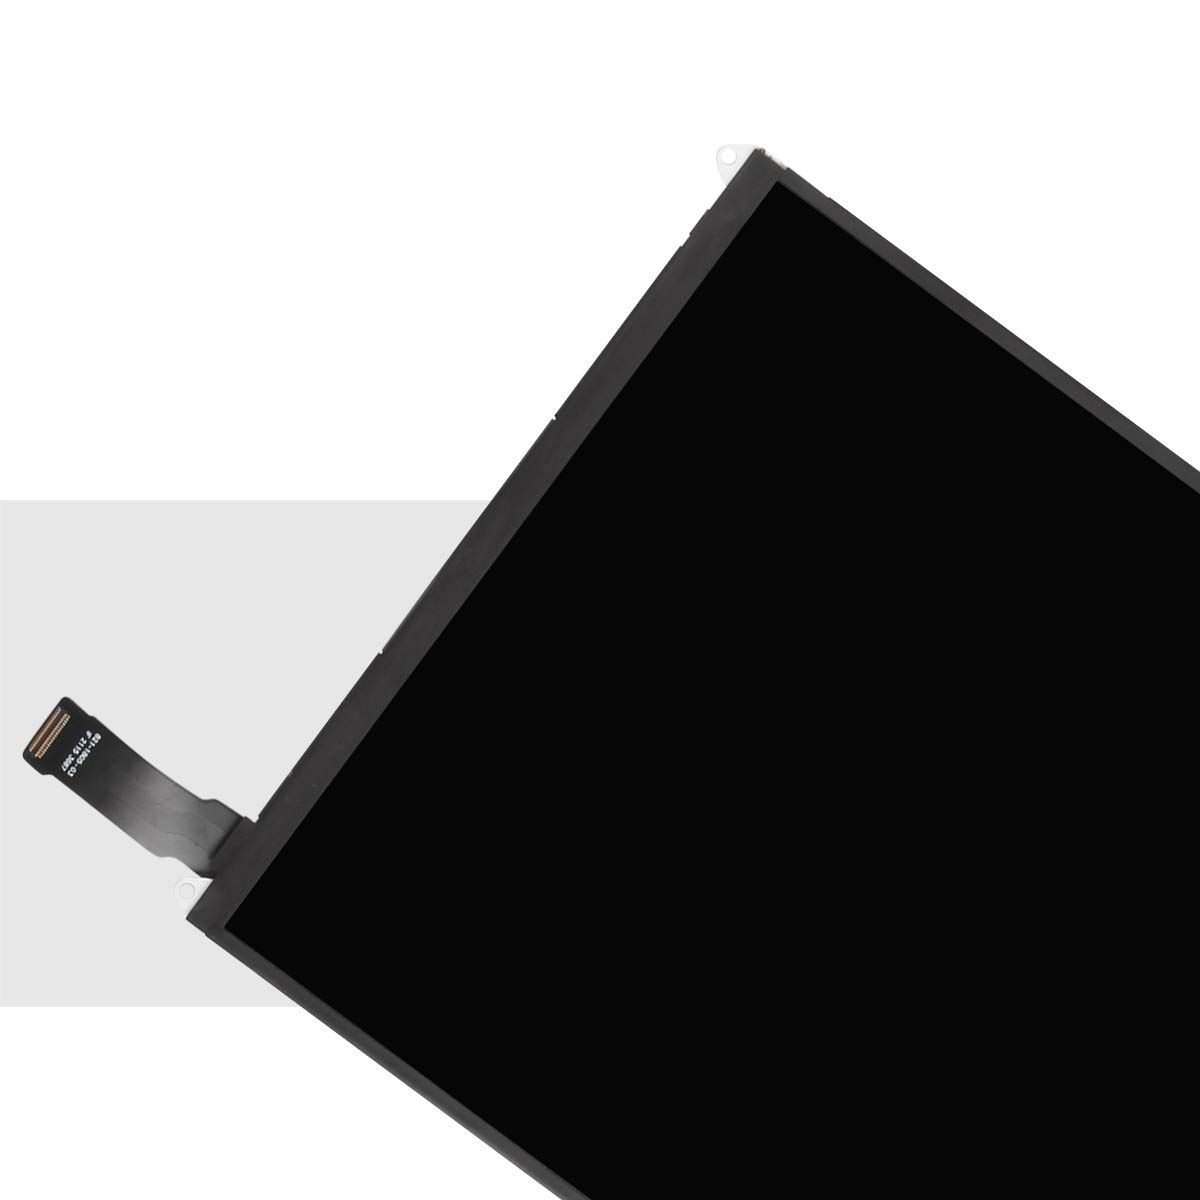 srjtek LCD Display Screen Replacement for IPad Mini 2 3 A1489 A1490 A1491 A1599 A1560 LCD Panel Repair Parts Kit,Include Tempered Glass,6 Month Warranty